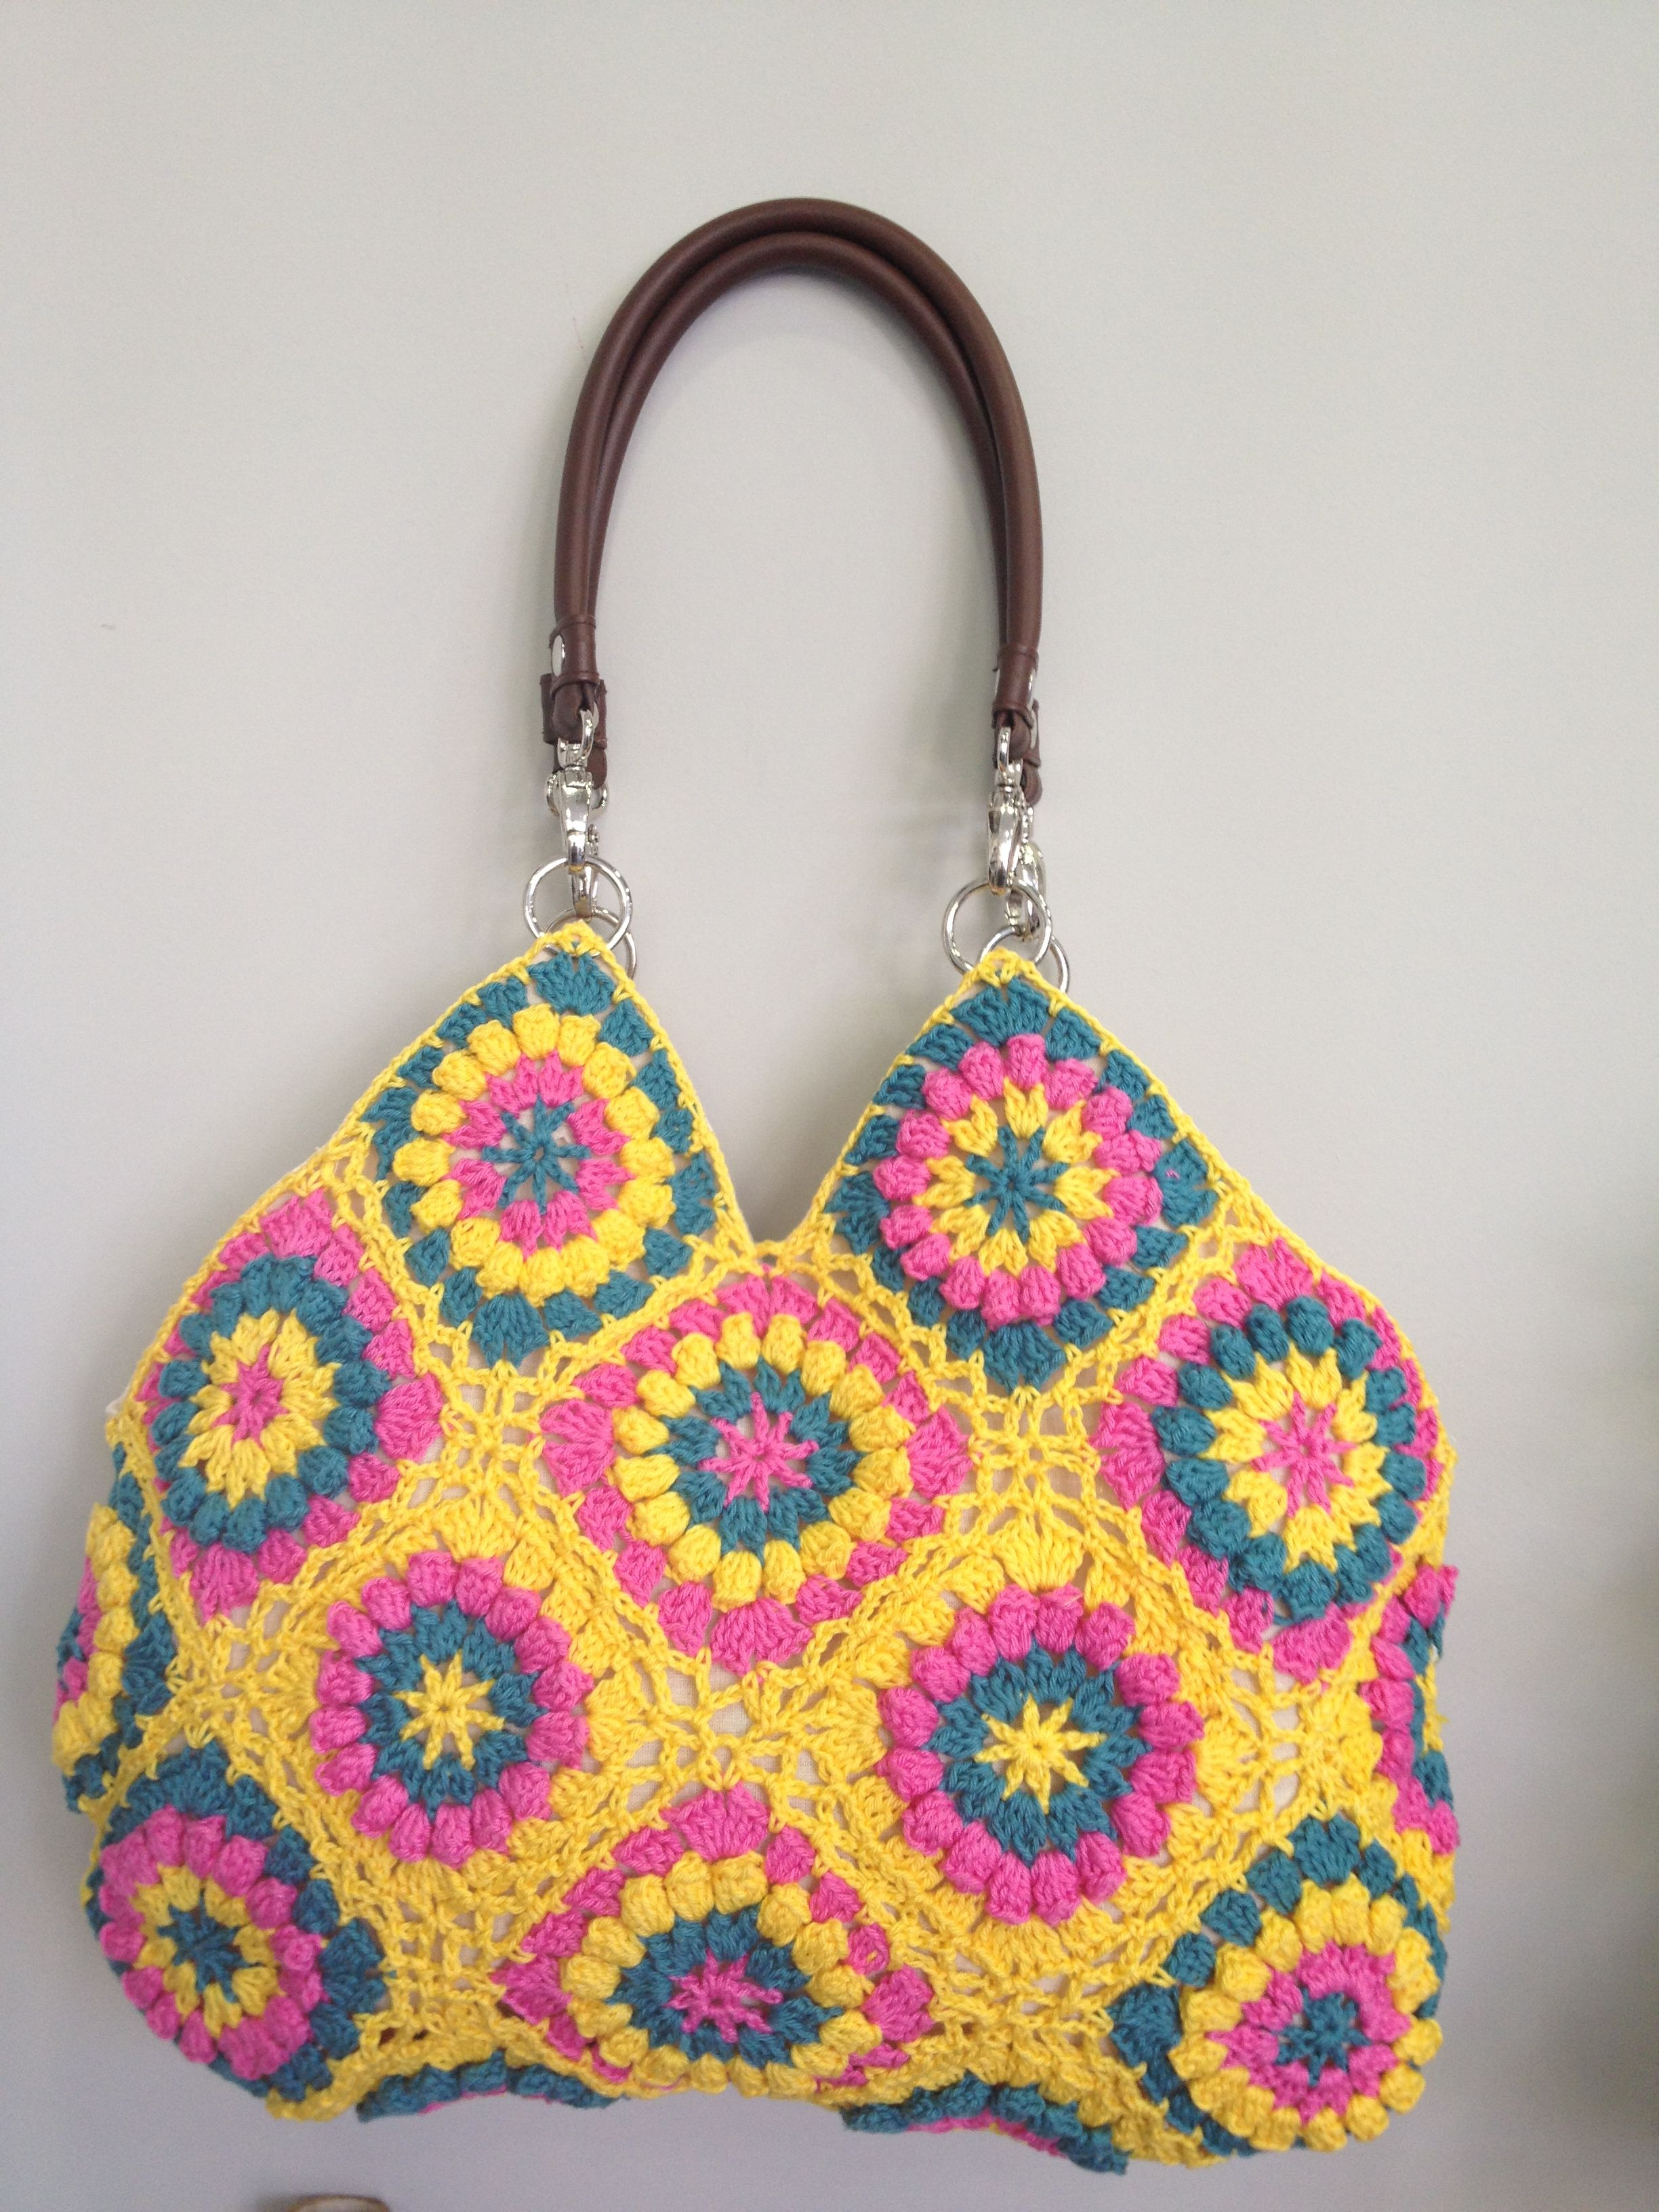 Summer Cotton Bag with Granny Squares ♛ Anastasia Gr